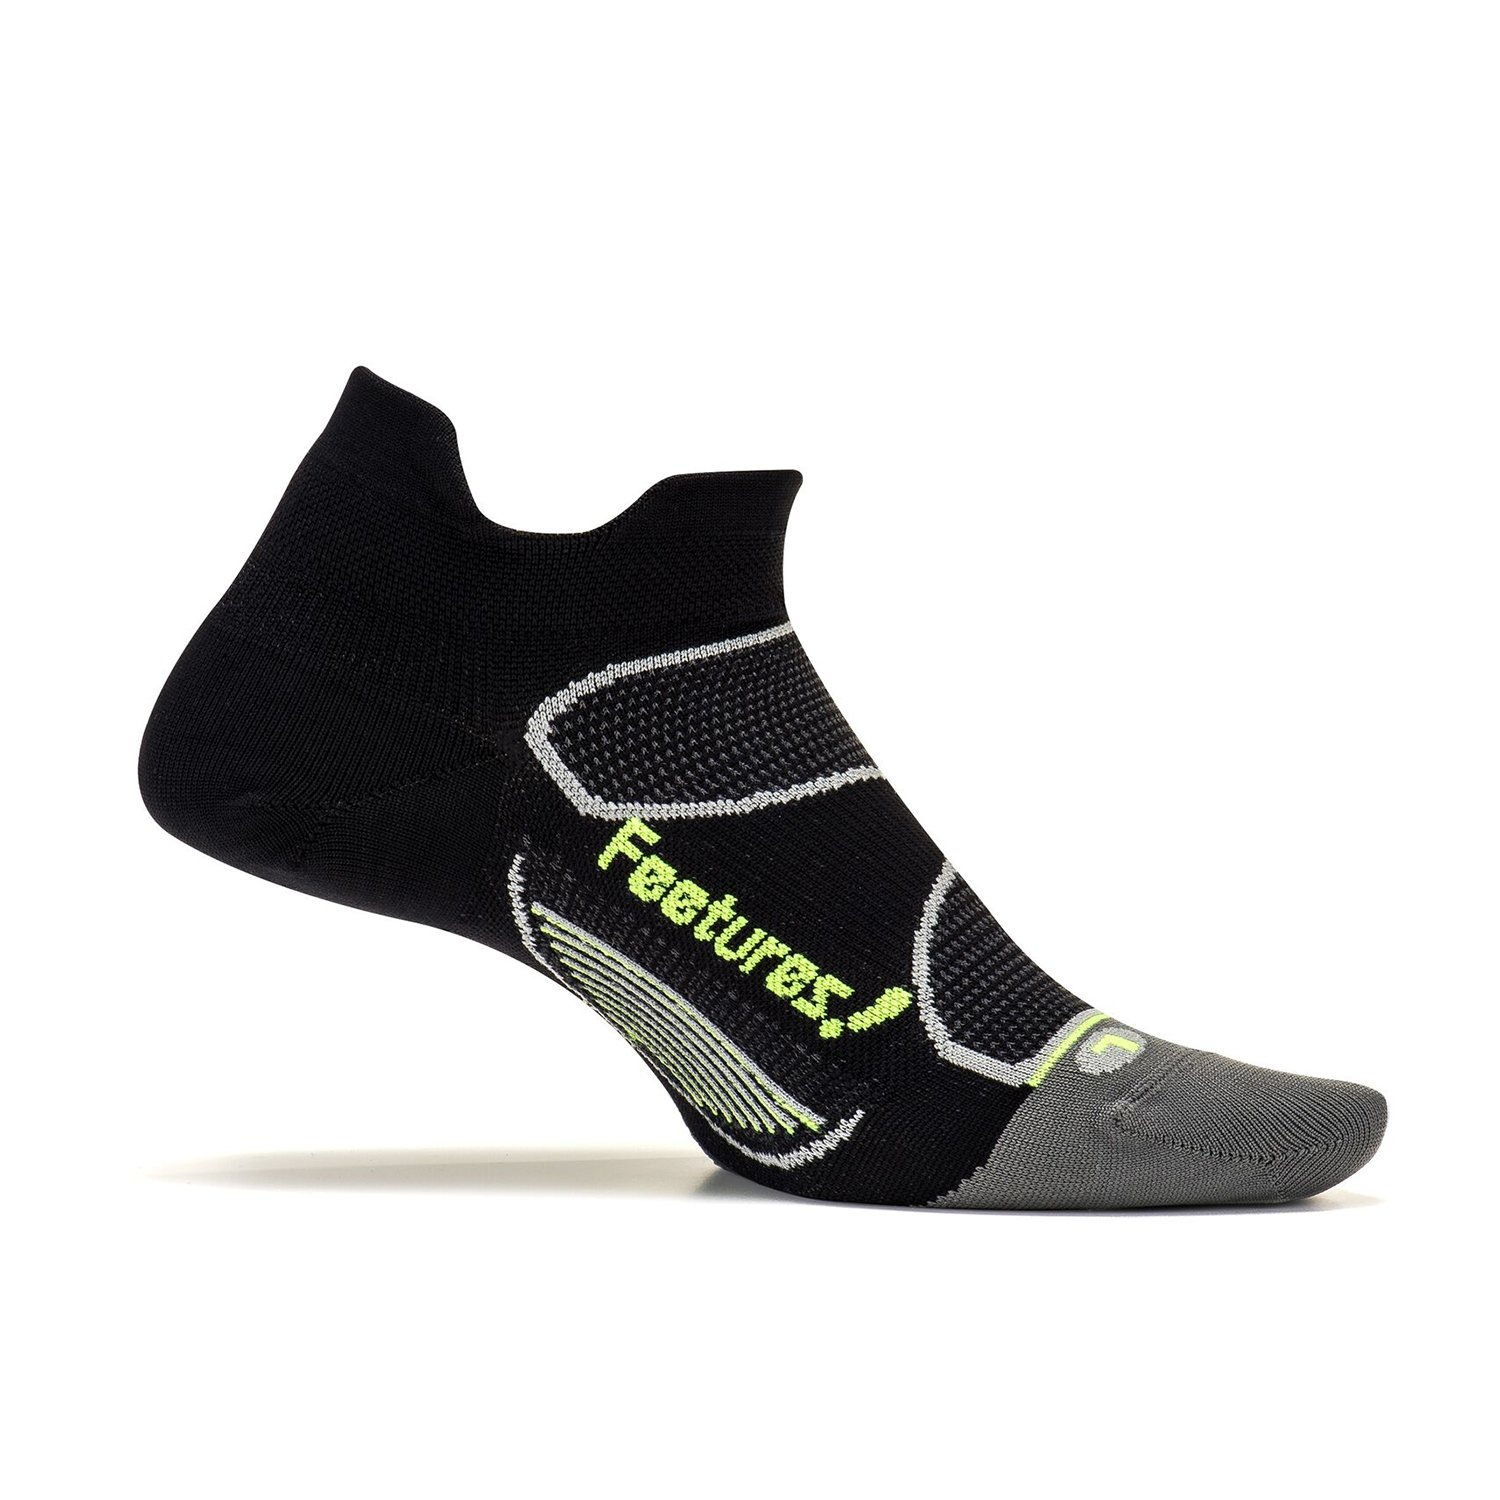 Feetures - Elite Ultra Light - No Show Tab - Athletic Running Socks for Men and Women - Black + Reflector - Size Medium